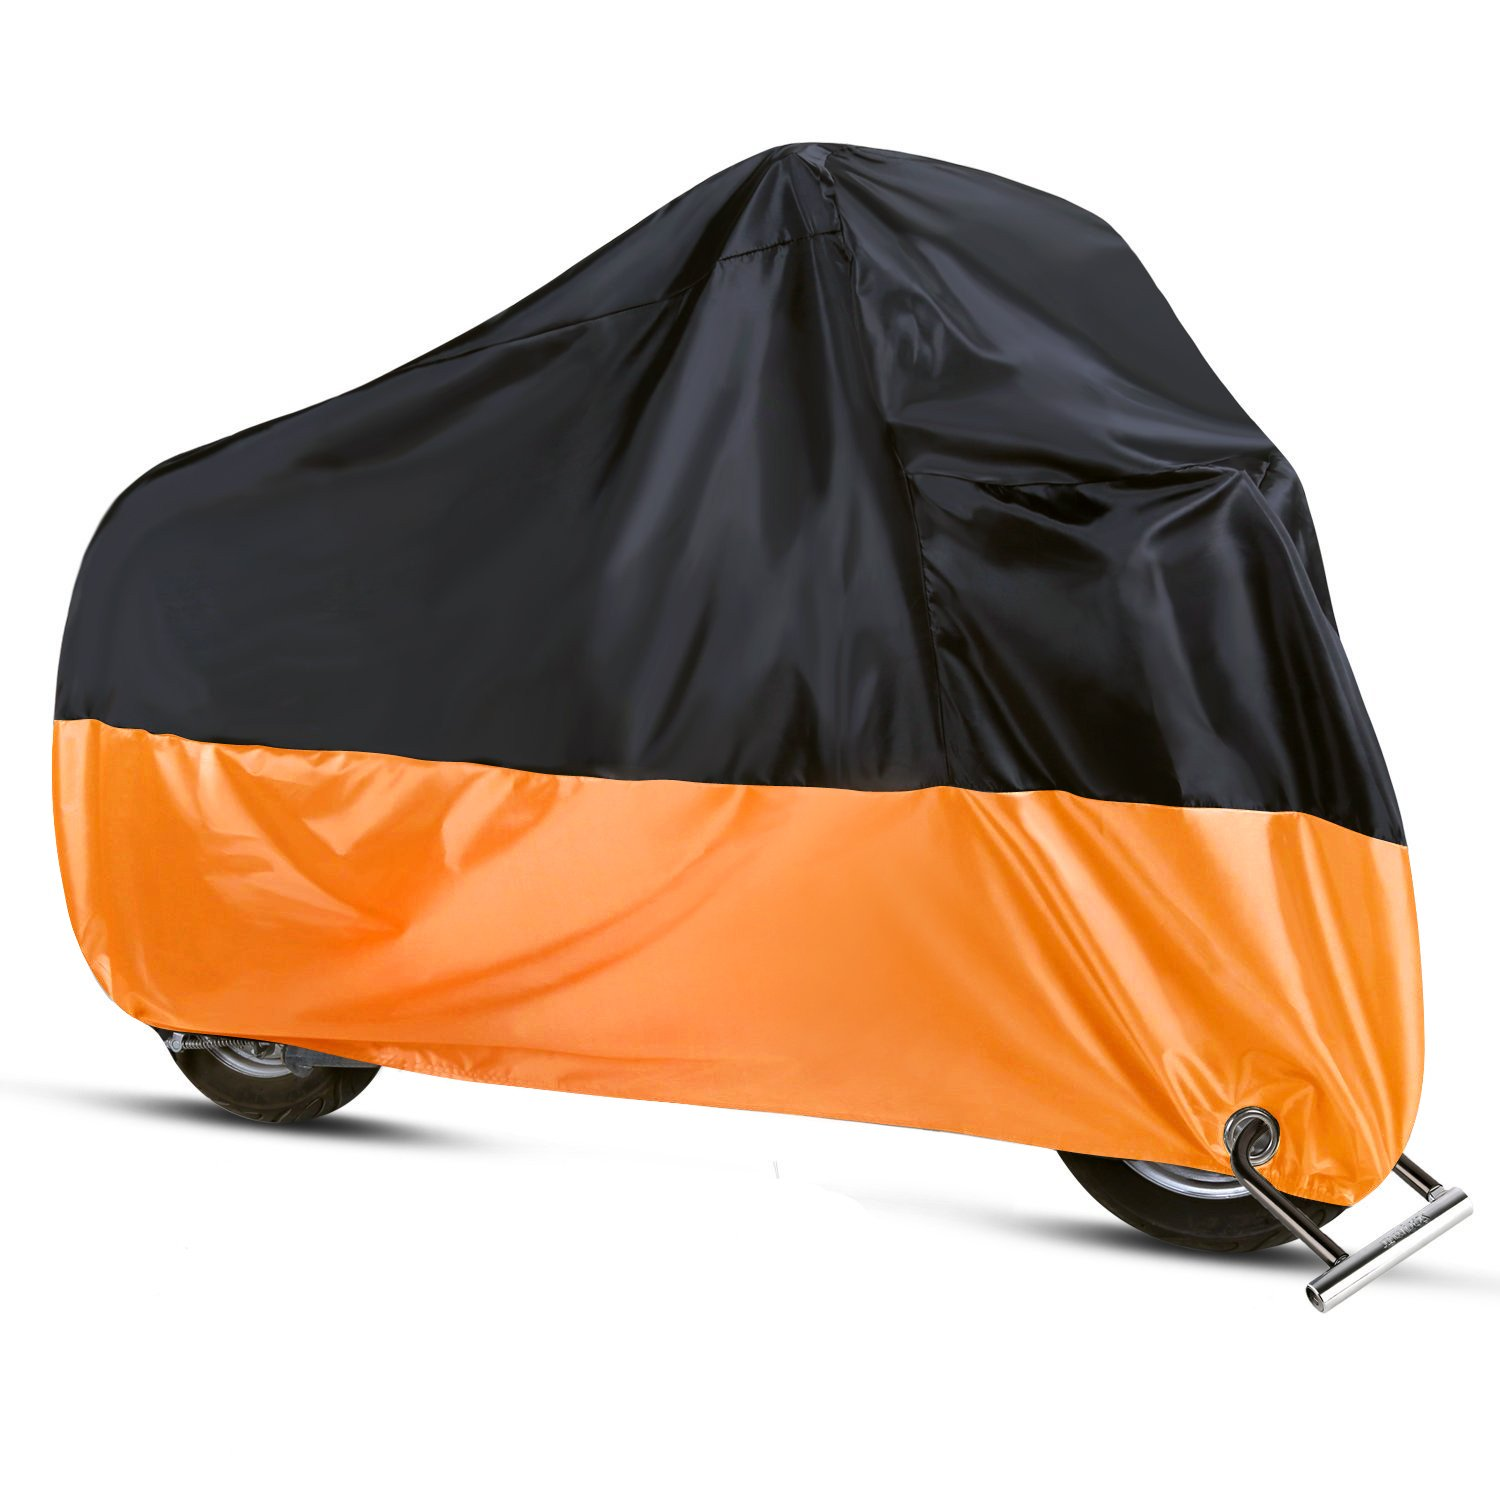 Sanku Waterproof Motorcycle Cover All Season Protection Outdoor Storage Bag,Precision Fits up to 96'' Motors , 2 Lock-holes Design, Anti-theft, Durable & Tear Proof (XL,Black& Orange) by Sanku